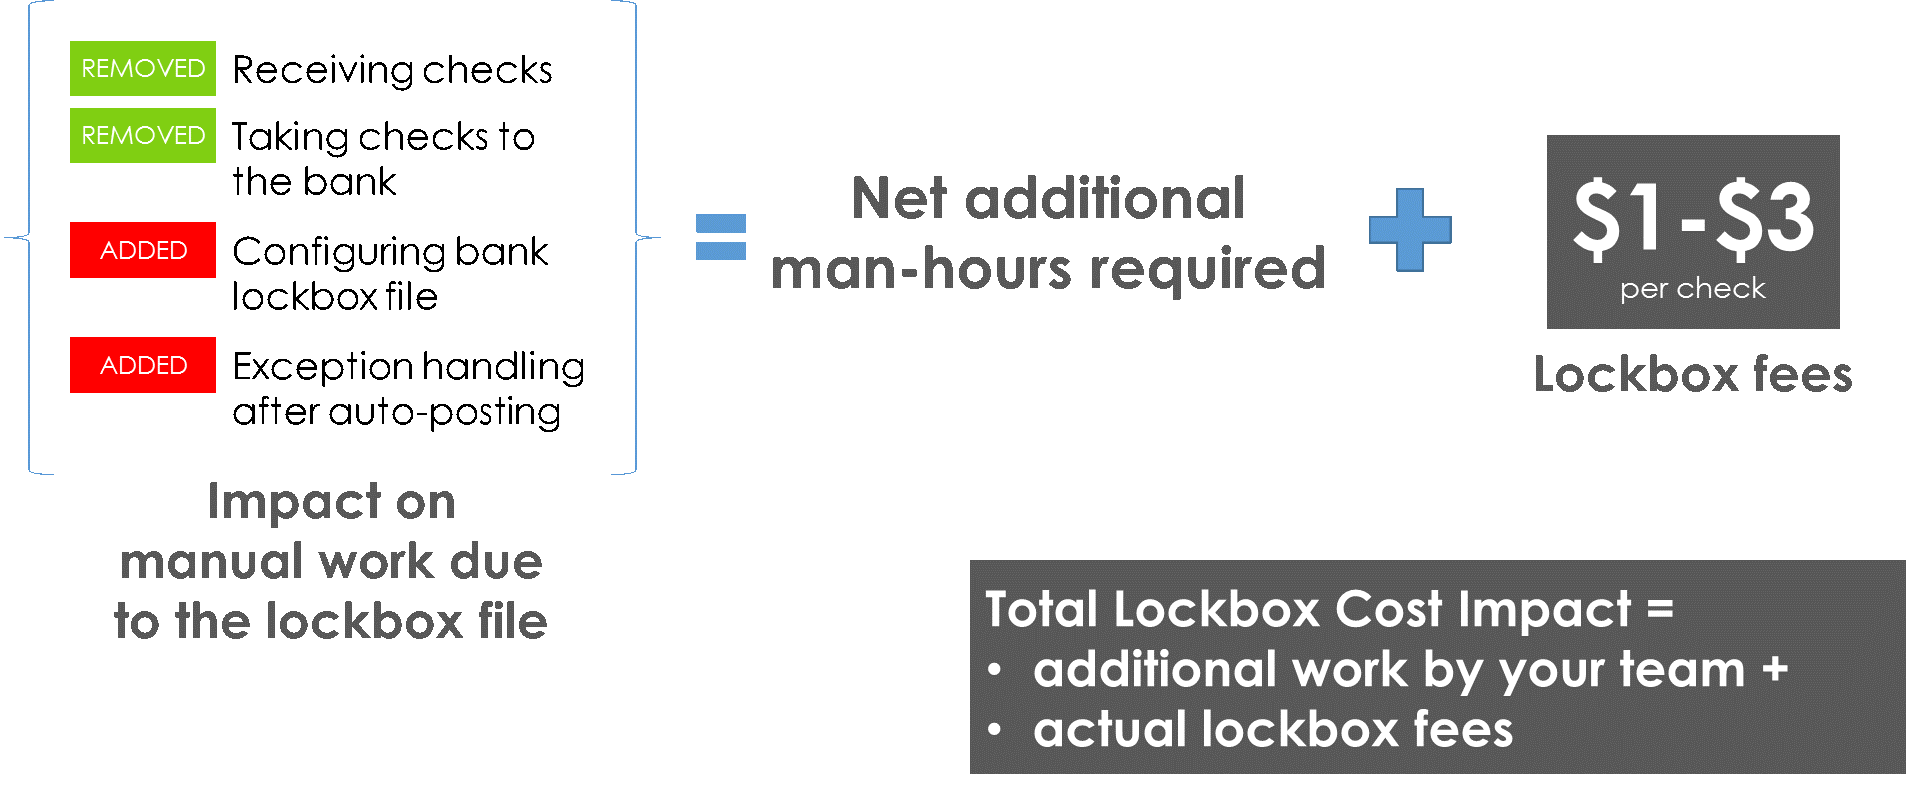 Impact-on-manual-work-due-to-lockbox-file